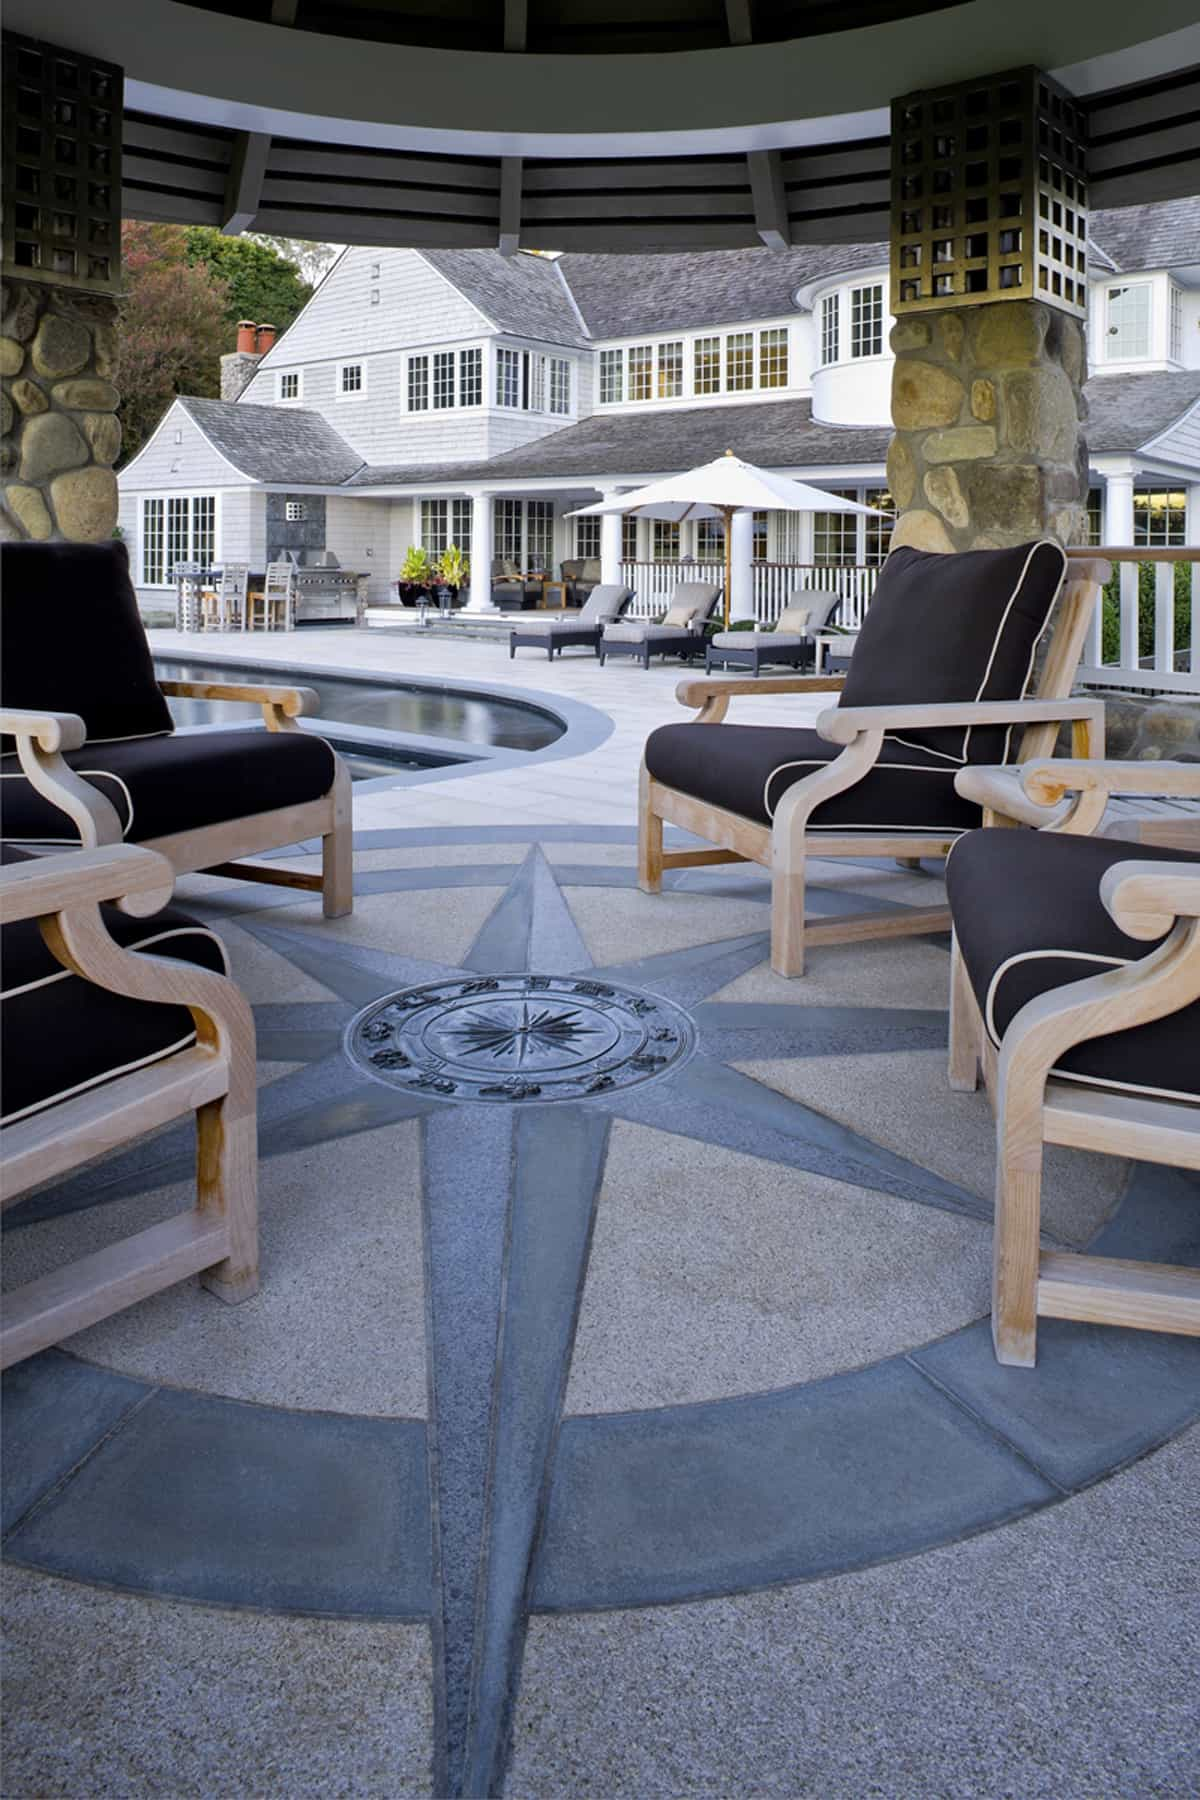 Featured Image of Wooden Chairs With Navy Cushions In Coastal Style Patio